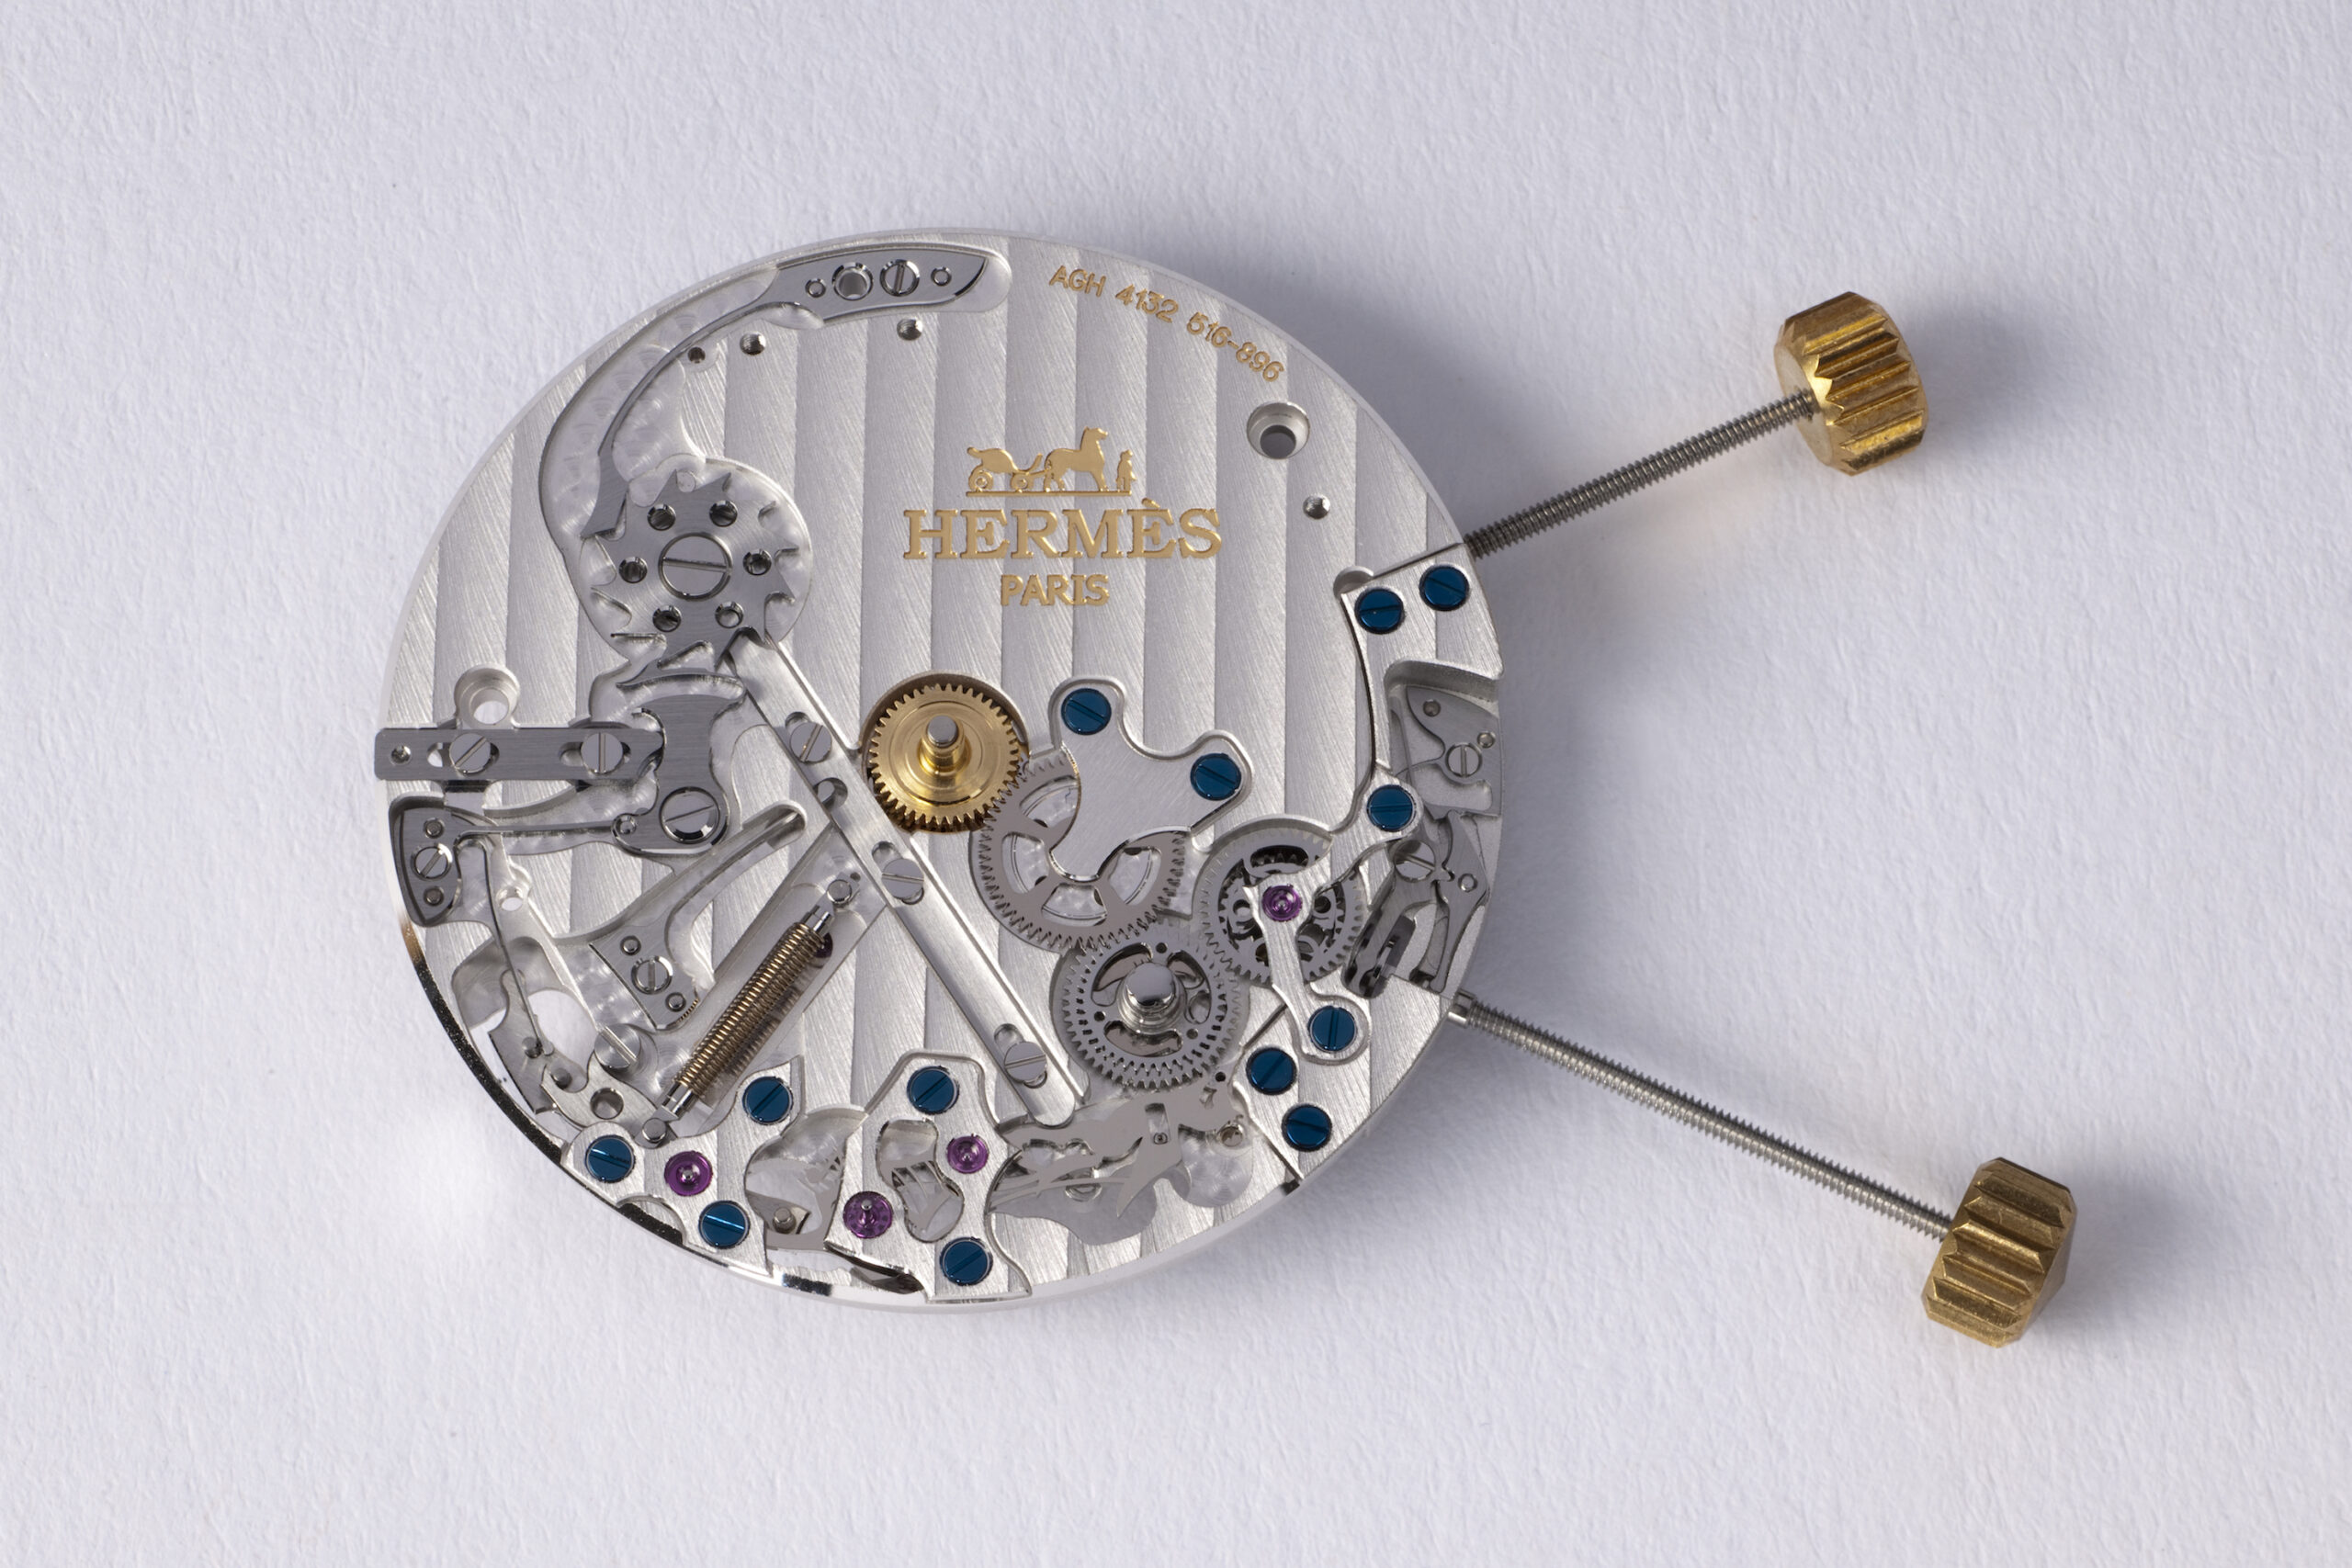 Manufacture Hermès H1912 movement (VAUCHER base calibre and a module developed by AGENHOR SA in Geneva)